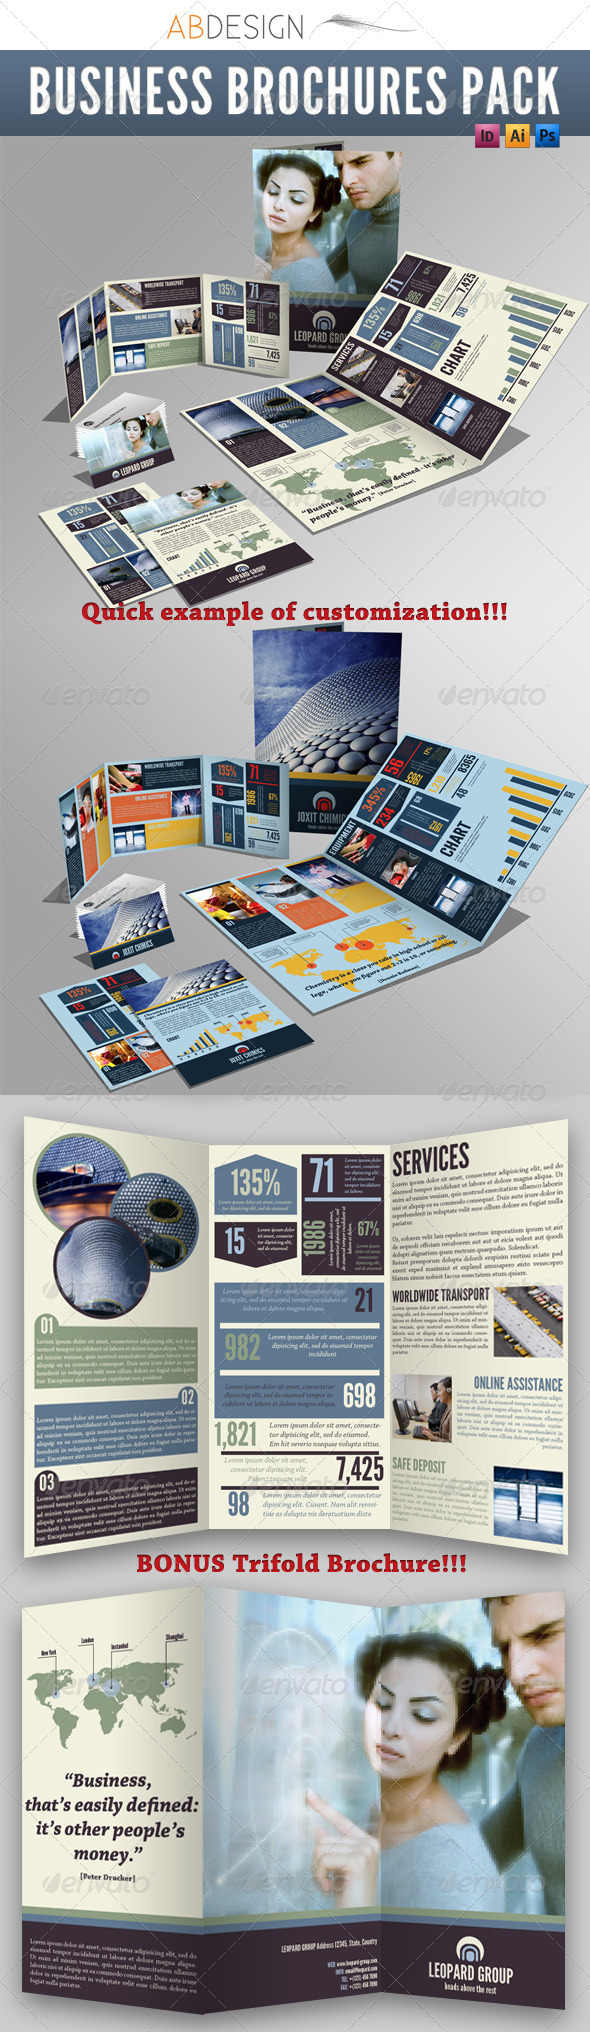 GraphicRiver Business Brochures Pack 535010